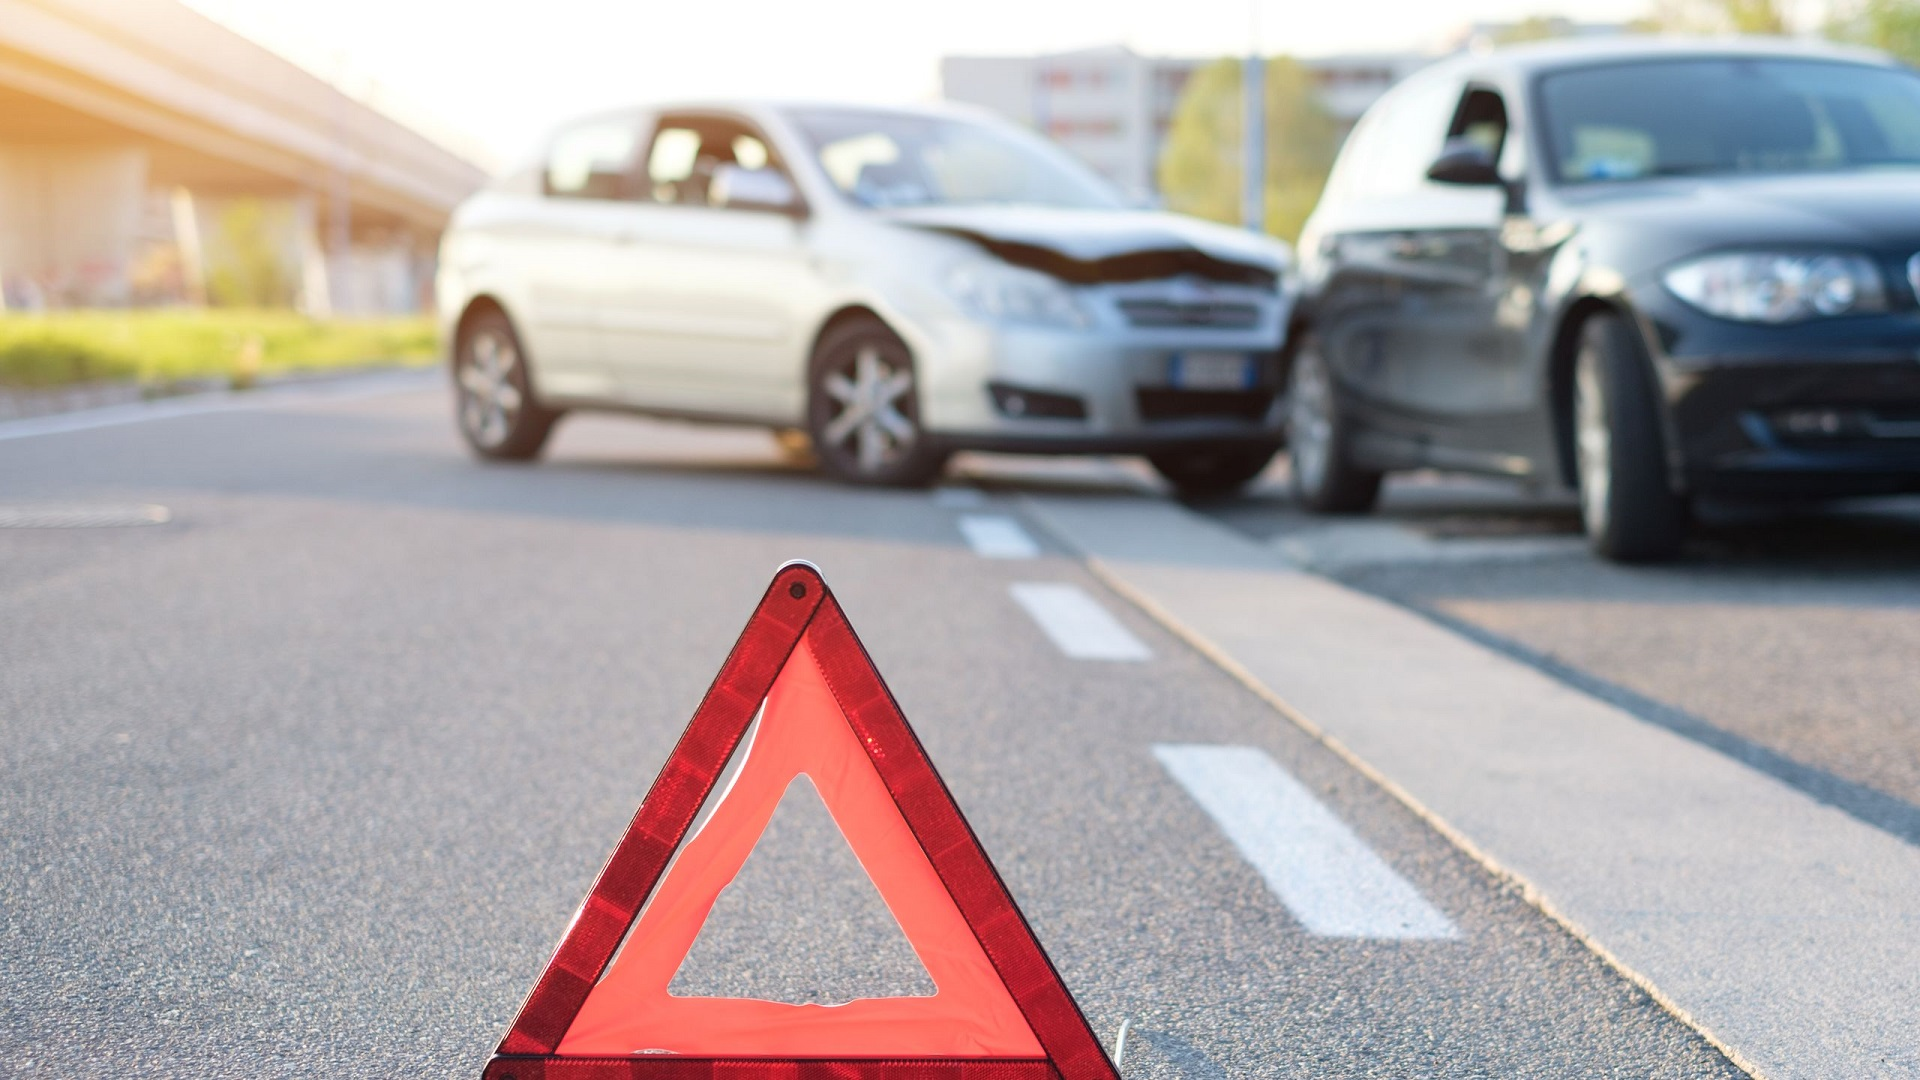 Review on Factors Causes Road Traffic Accident in Africa